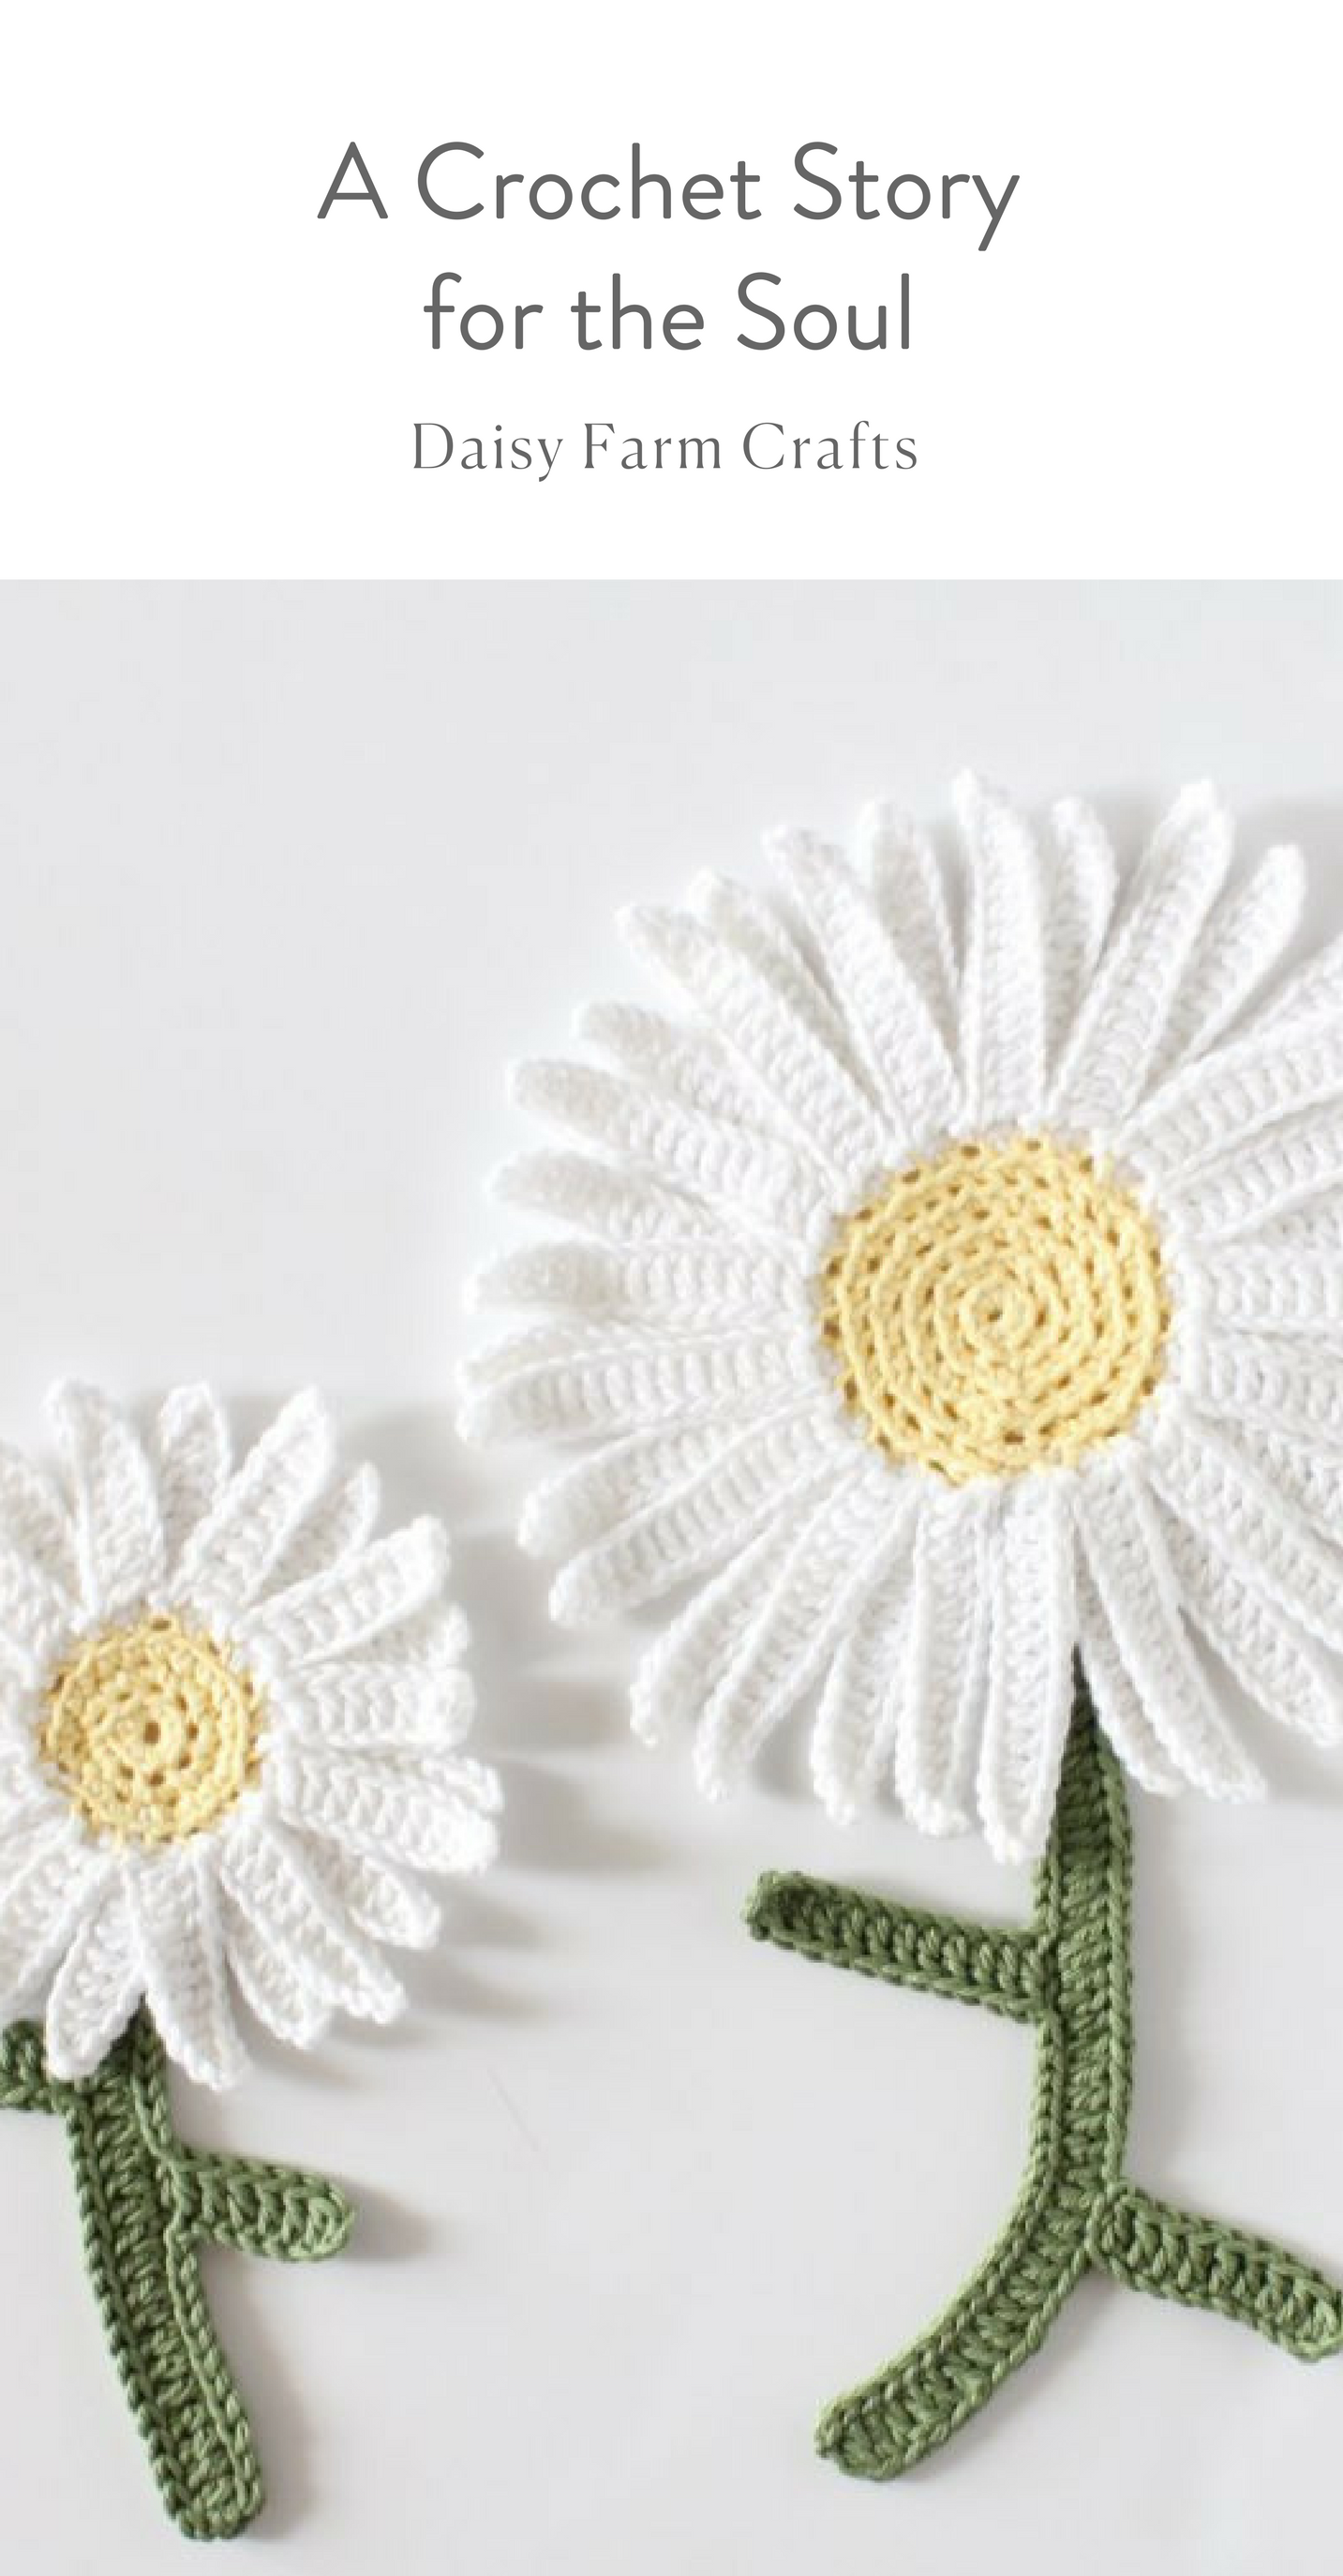 A crochet story for the soul daisy farm crafts blog flori a crochet story for the soul daisy farm crafts blog izmirmasajfo